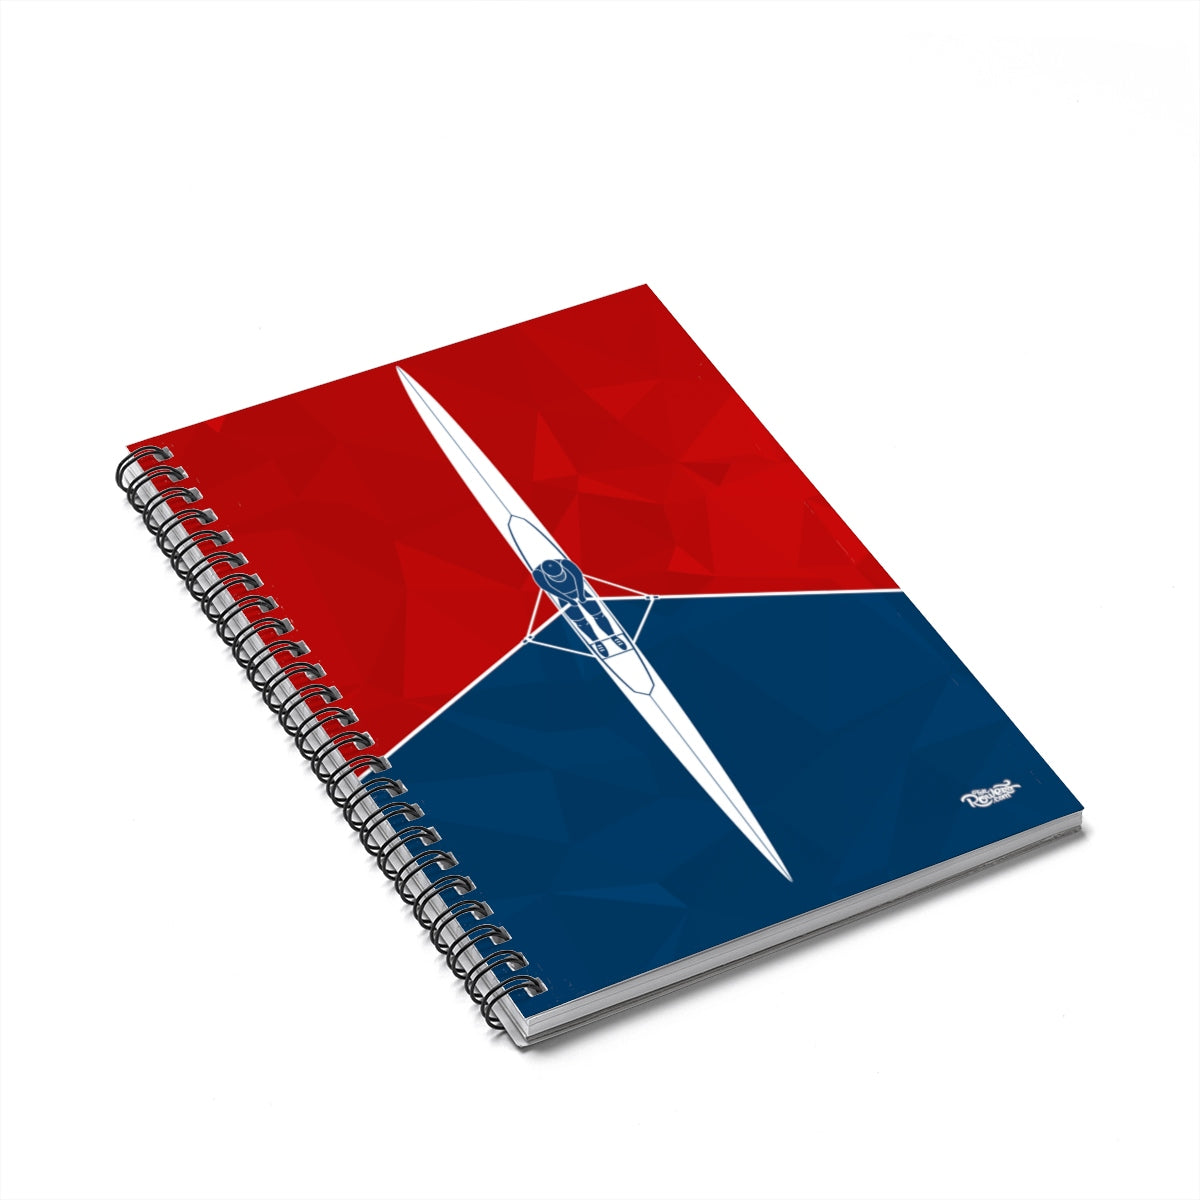 Single Spiral Notebook - Ruled Line - USRowing Store